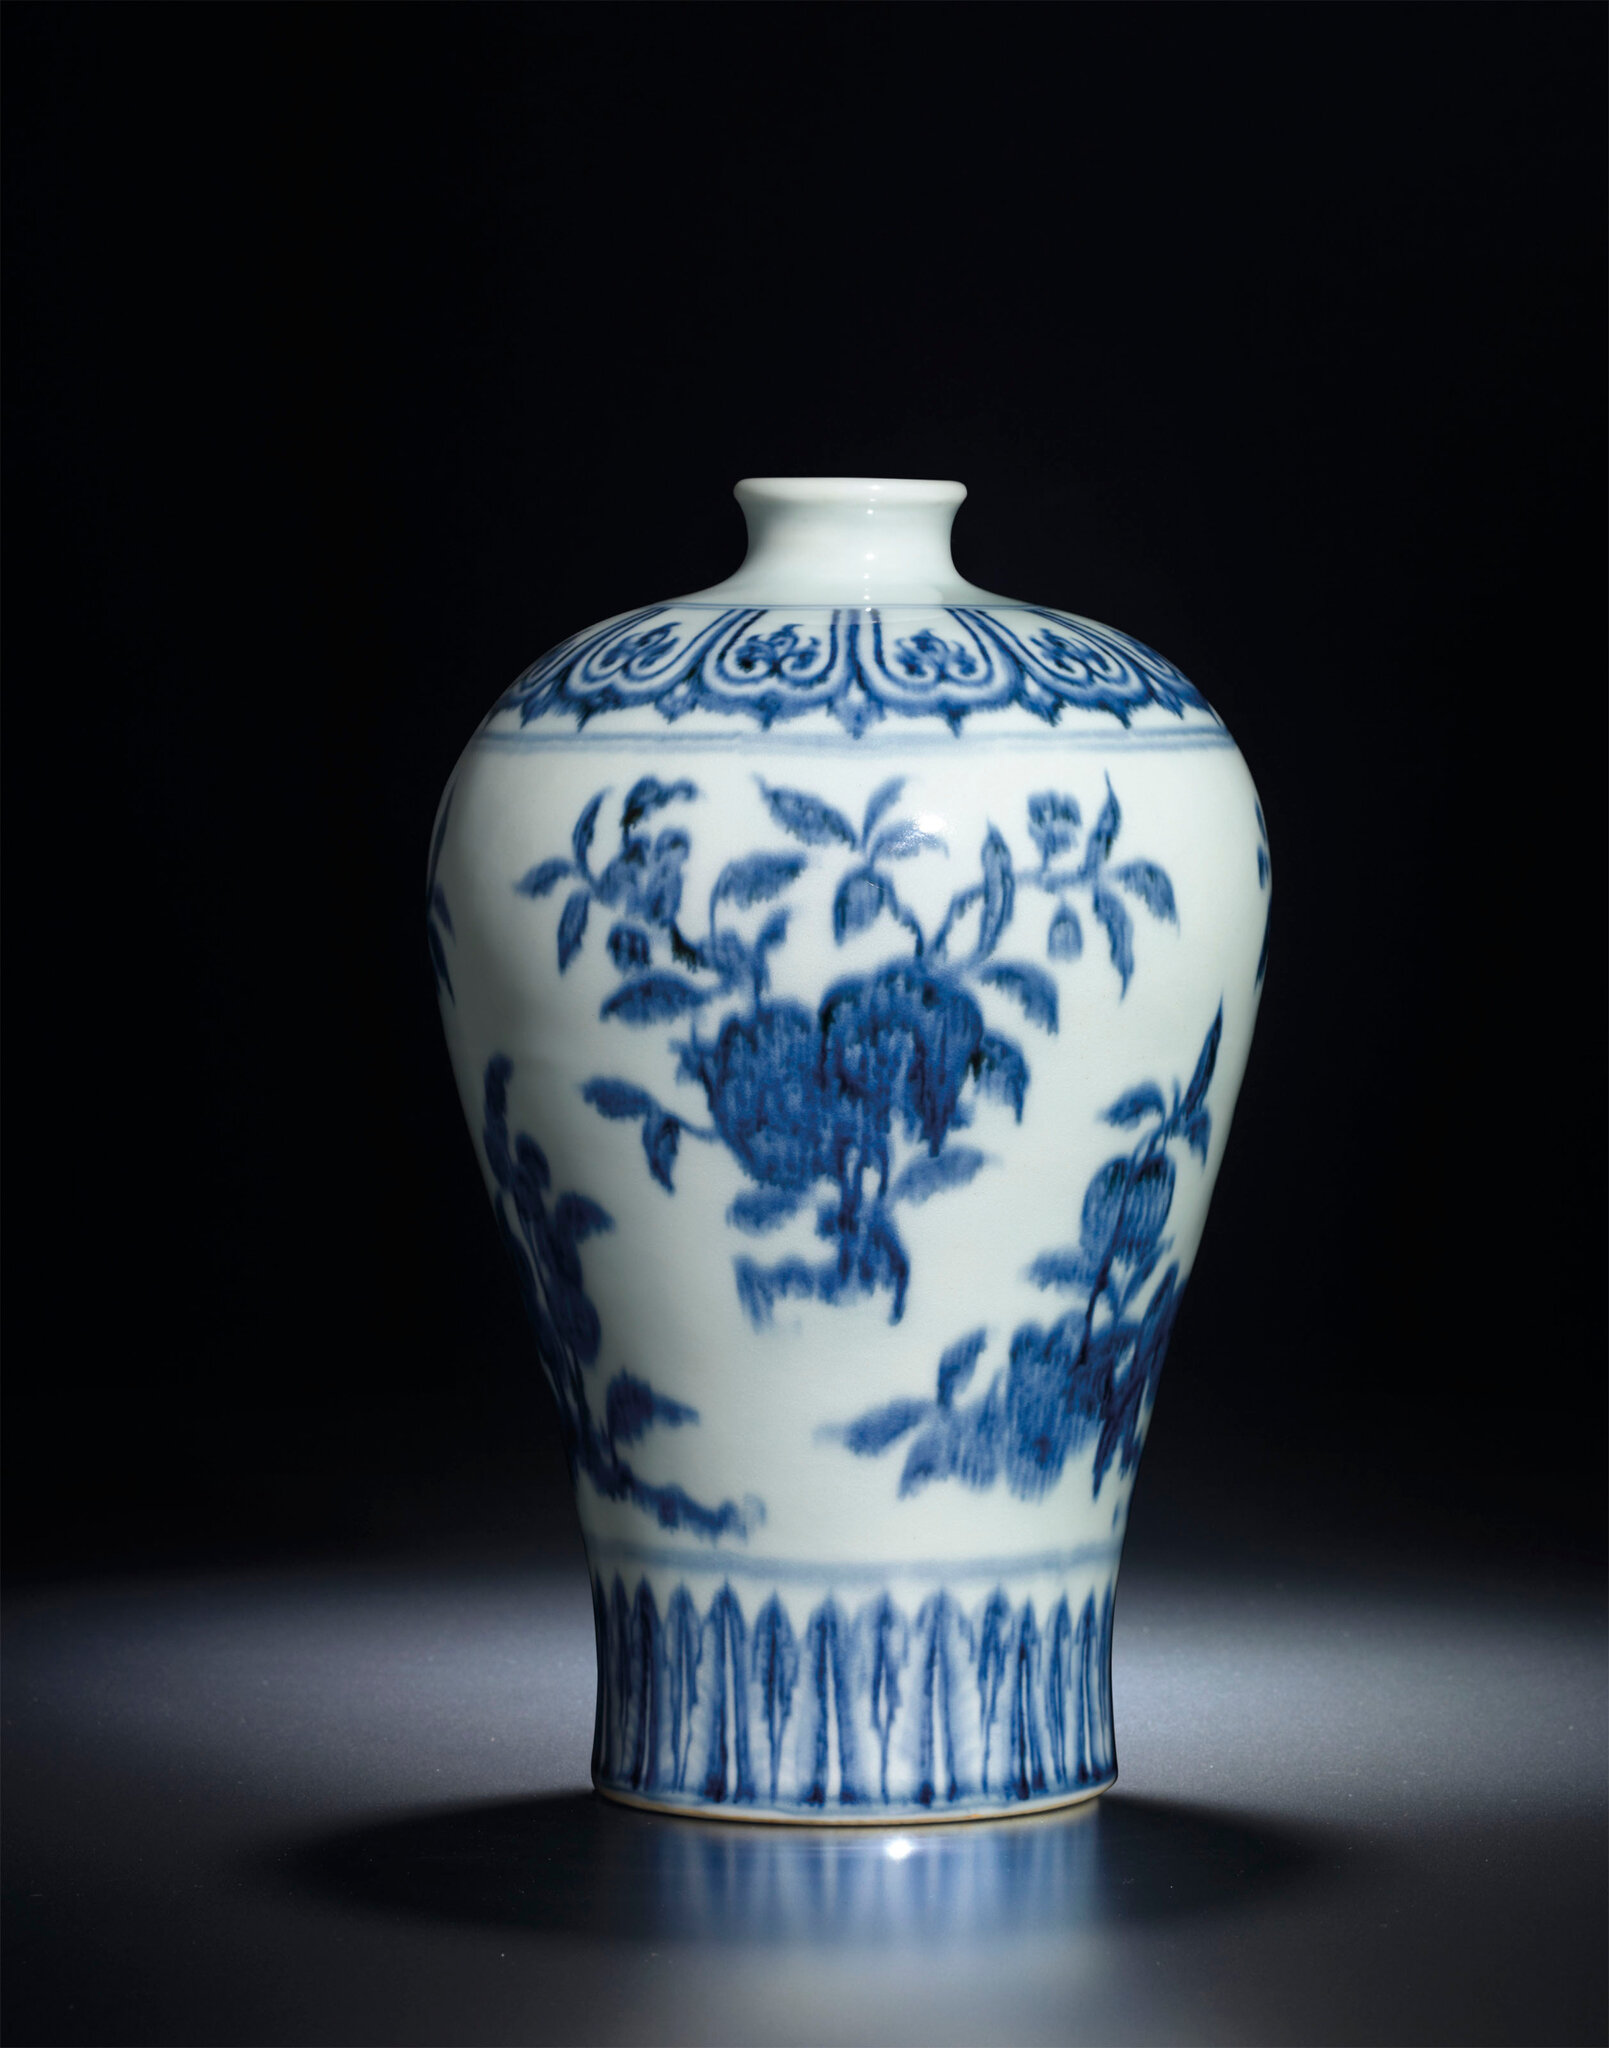 A Fine Early Ming Blue and White Vase, meiping, Yongle period (1403-1425)